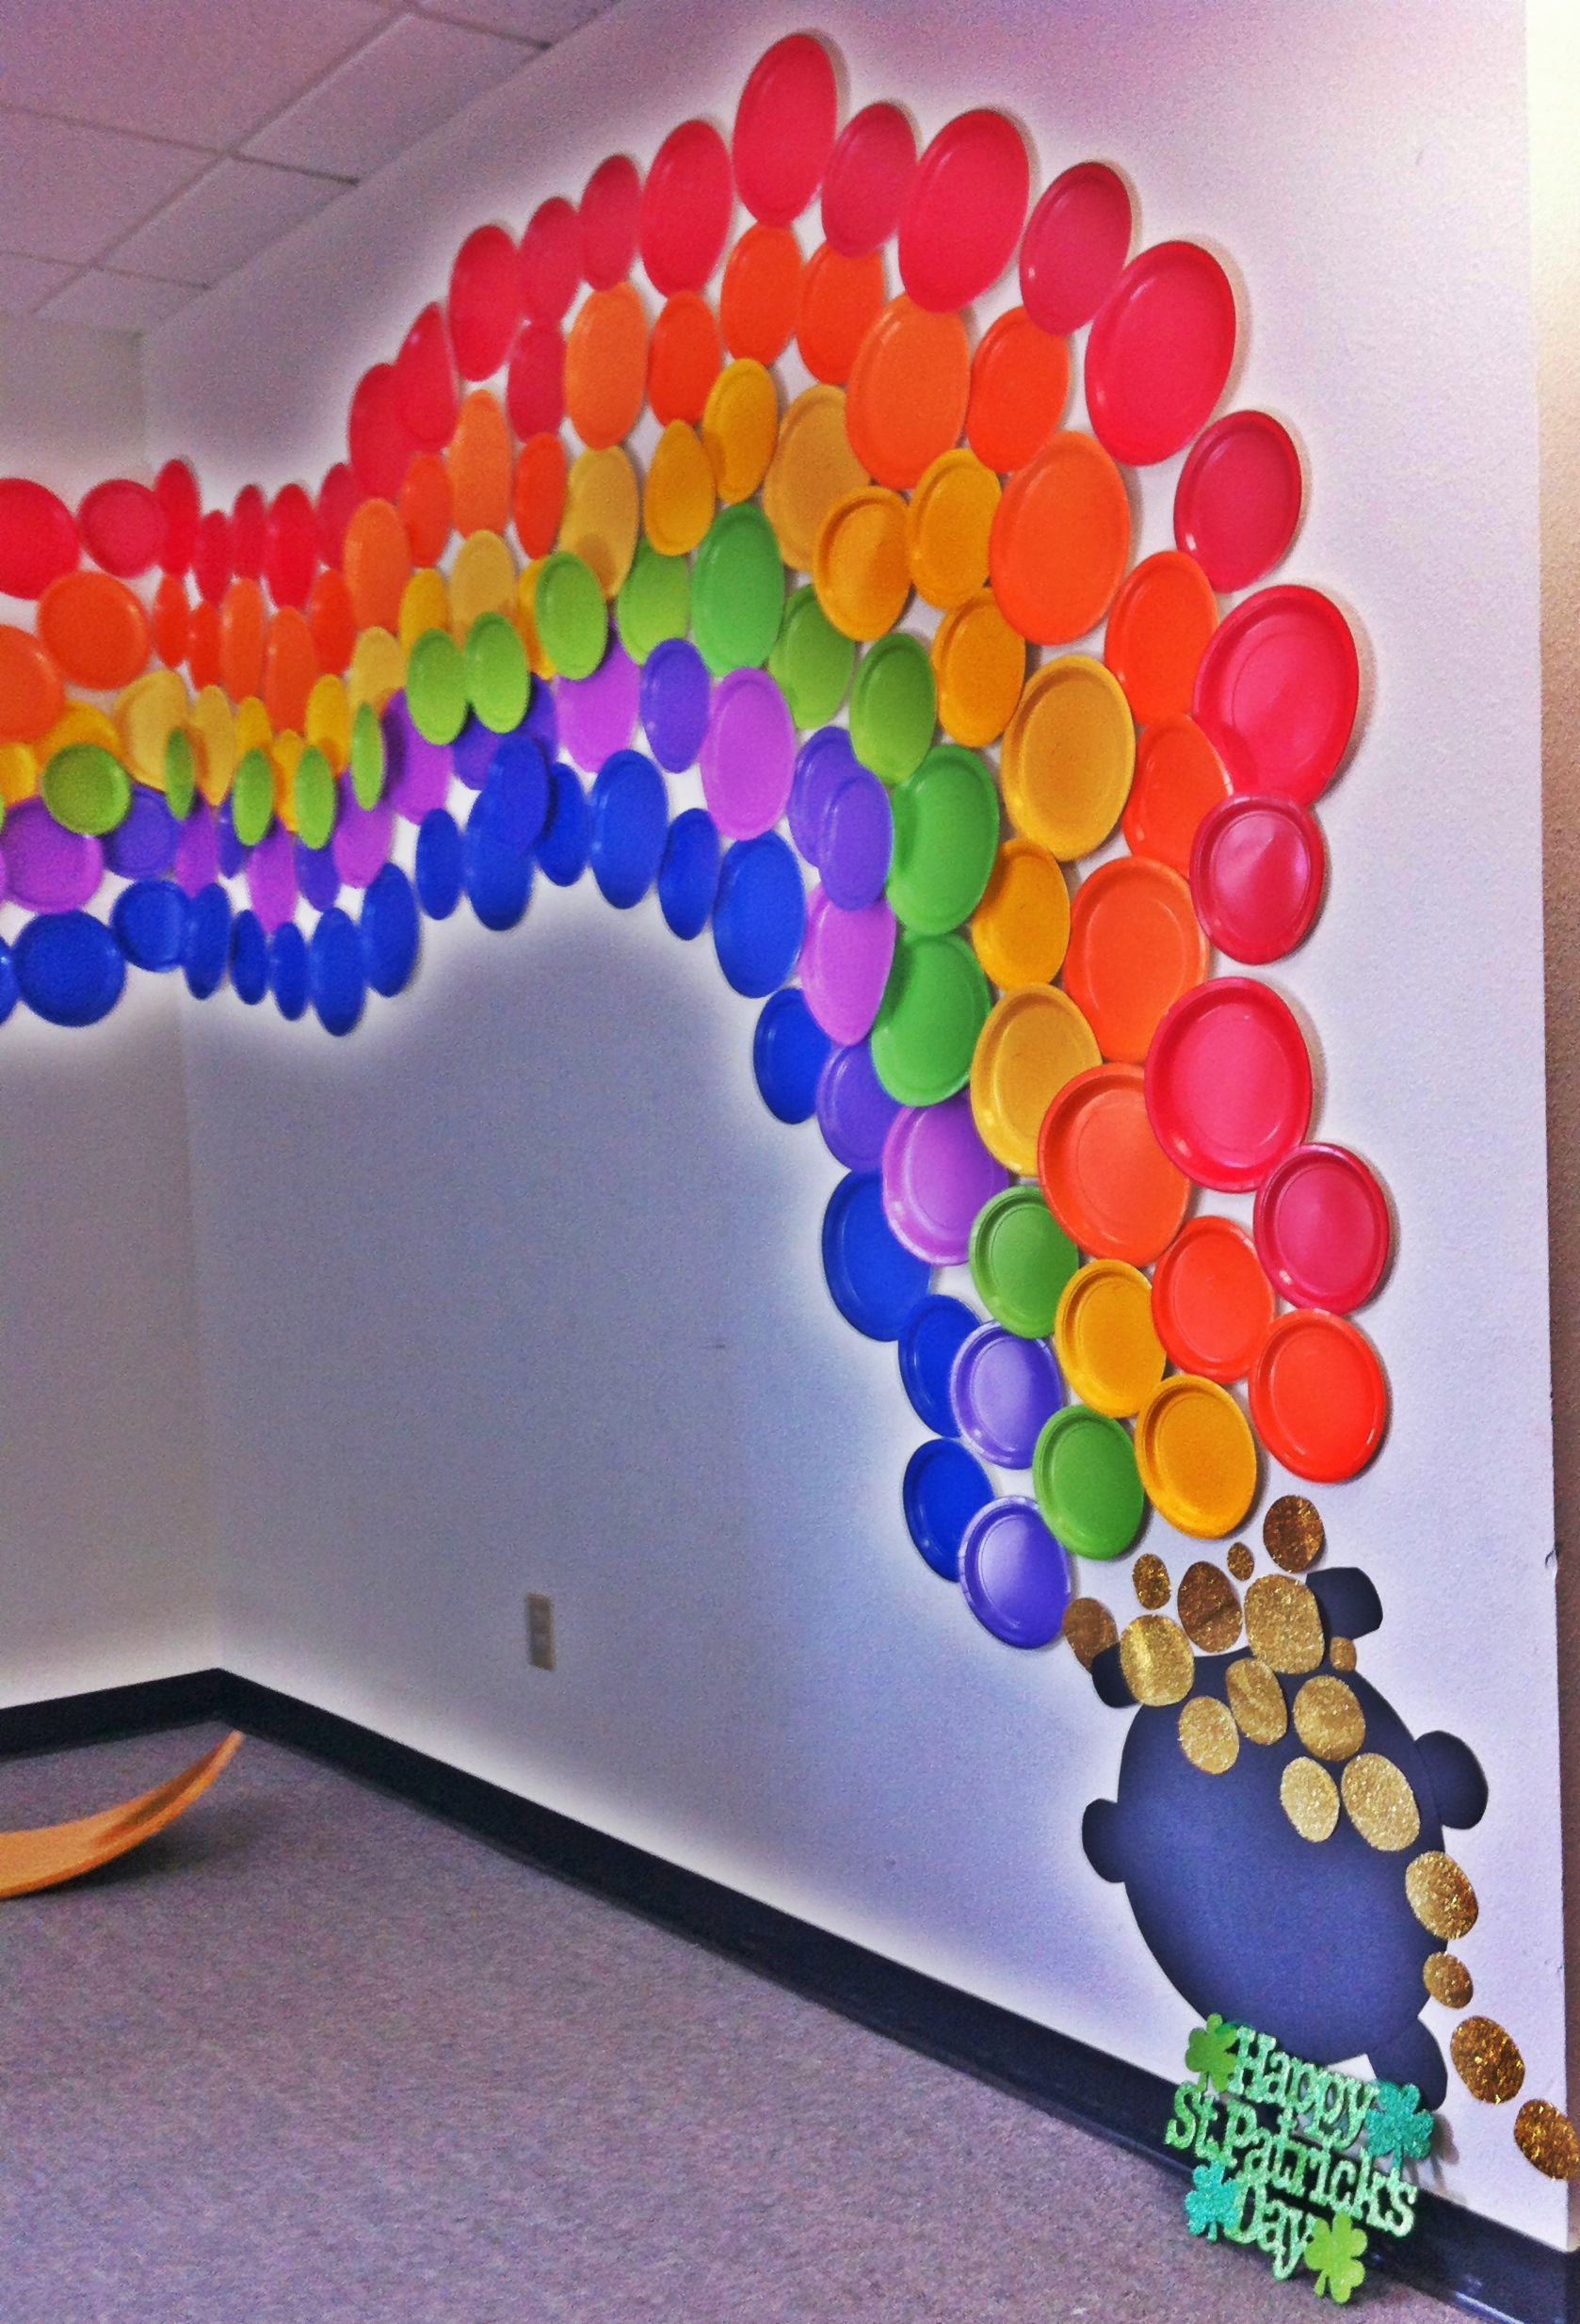 Rainbow wall decor to liven any office